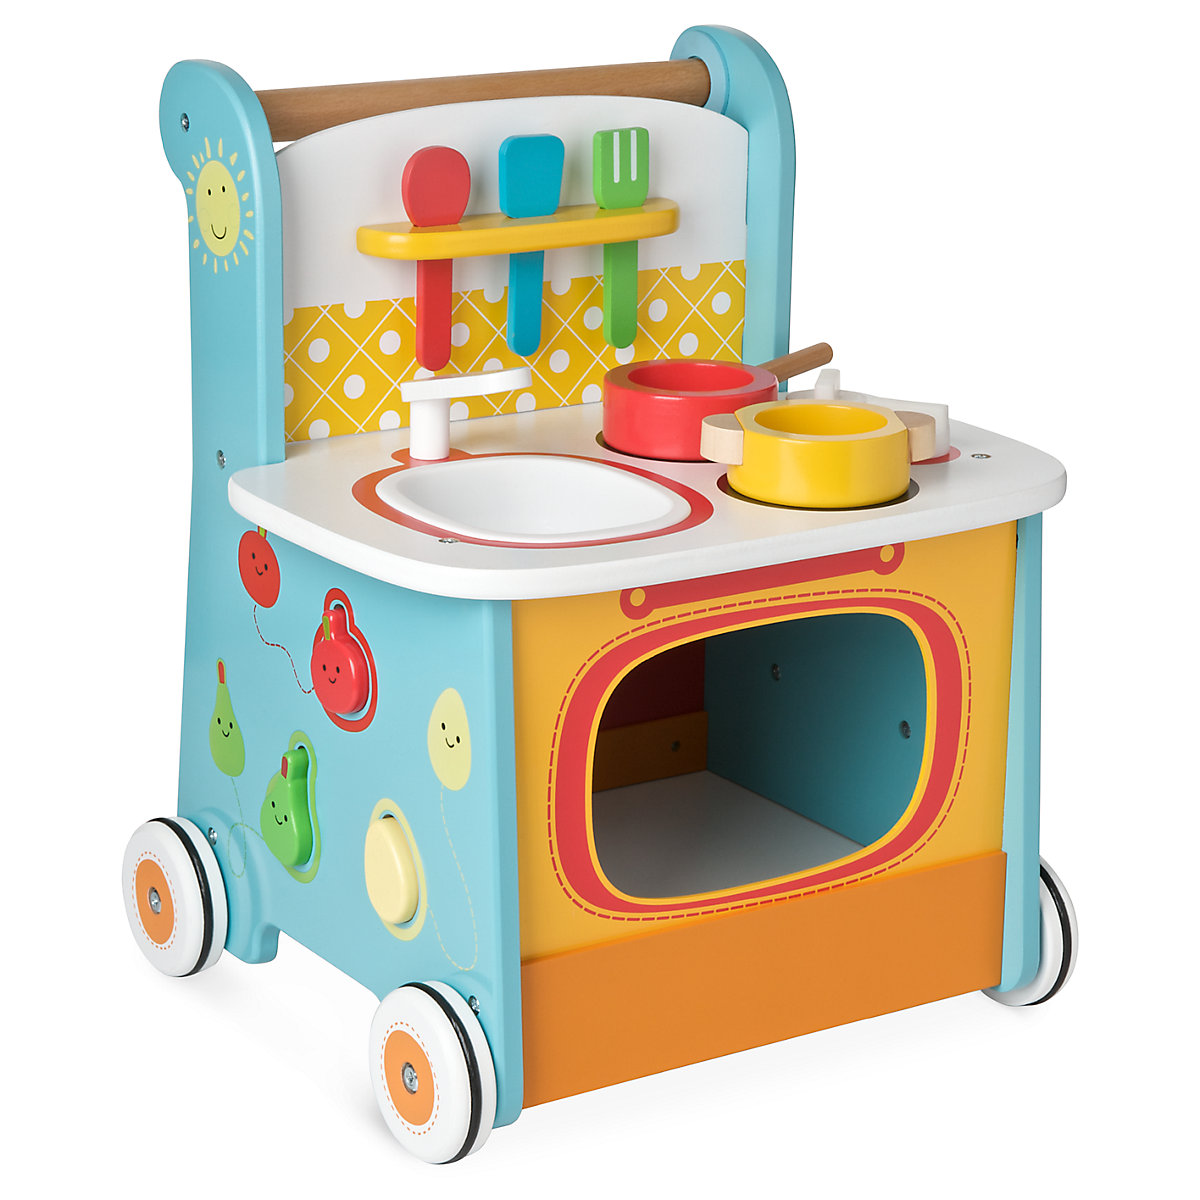 New ELC Boys and Girls Wooden Activity Kitchen Walker Toy From 12 months - Toddler Gifts